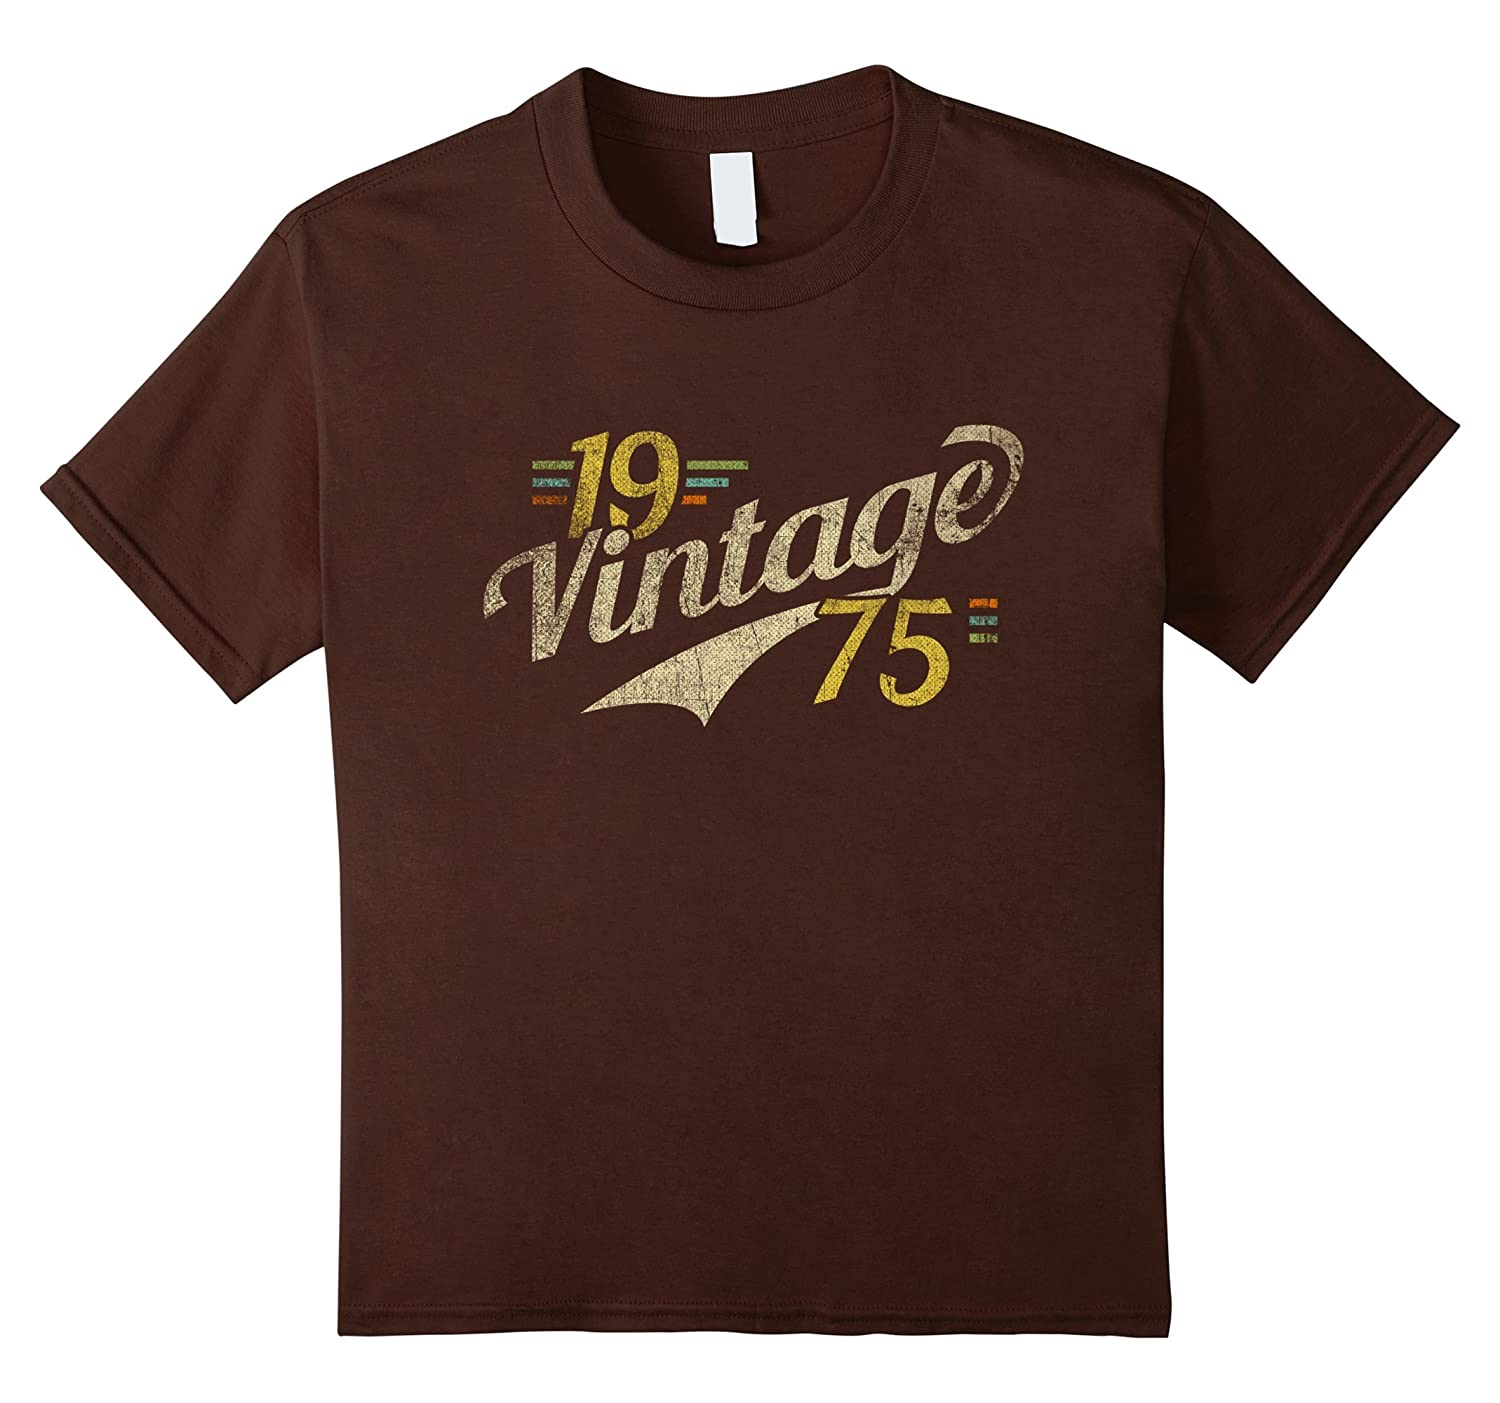 1975 Vintage Distressed Classic Birthday-Awarplus